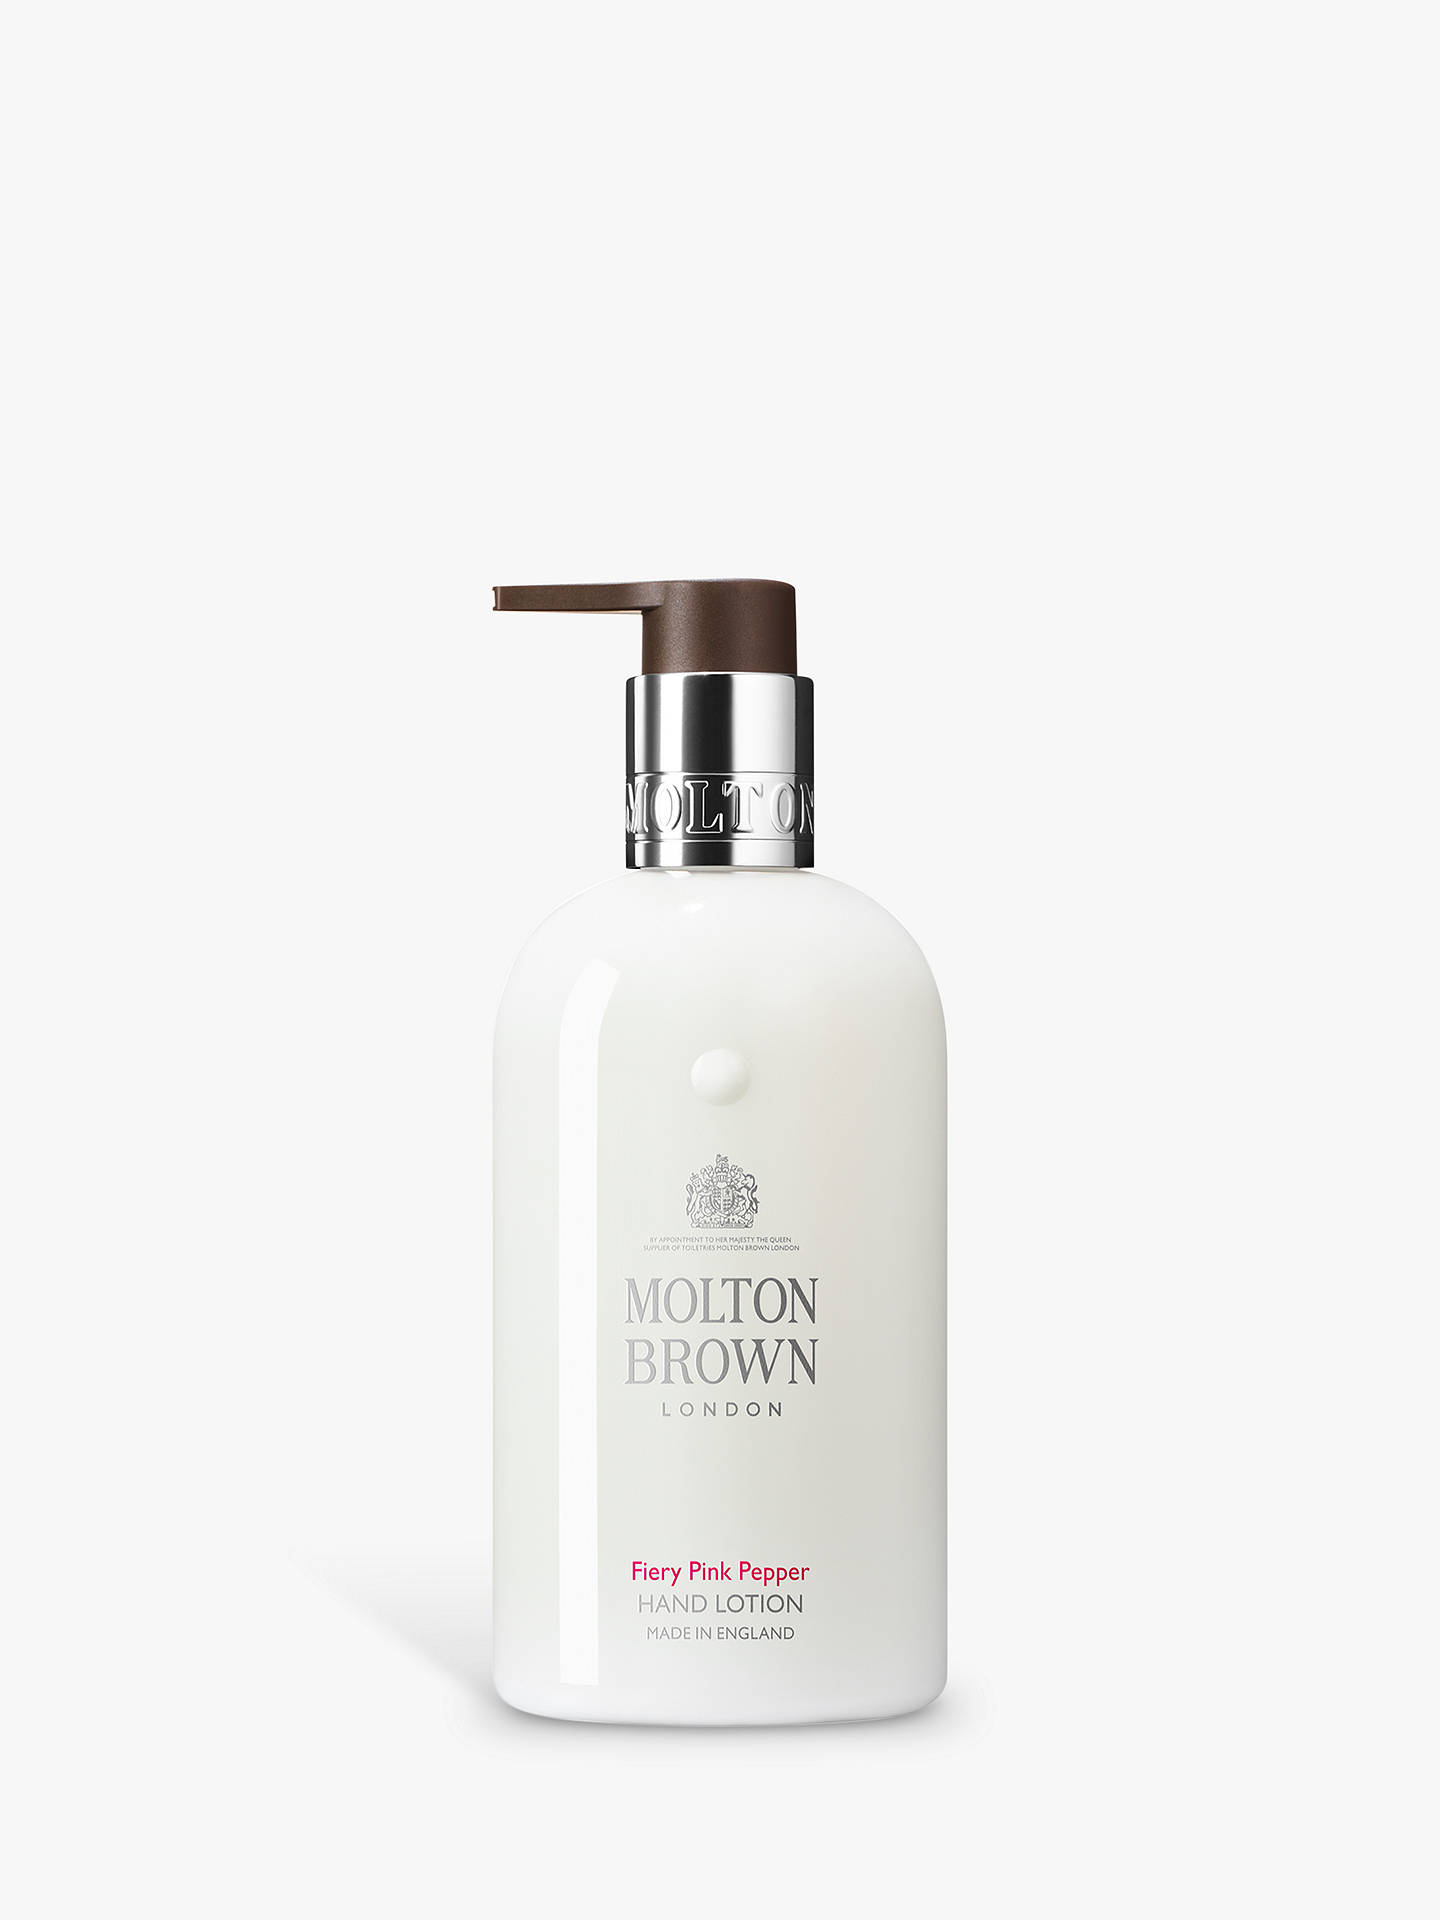 Molton Brown Fiery Pink Pepper Hand Lotion, 300ml